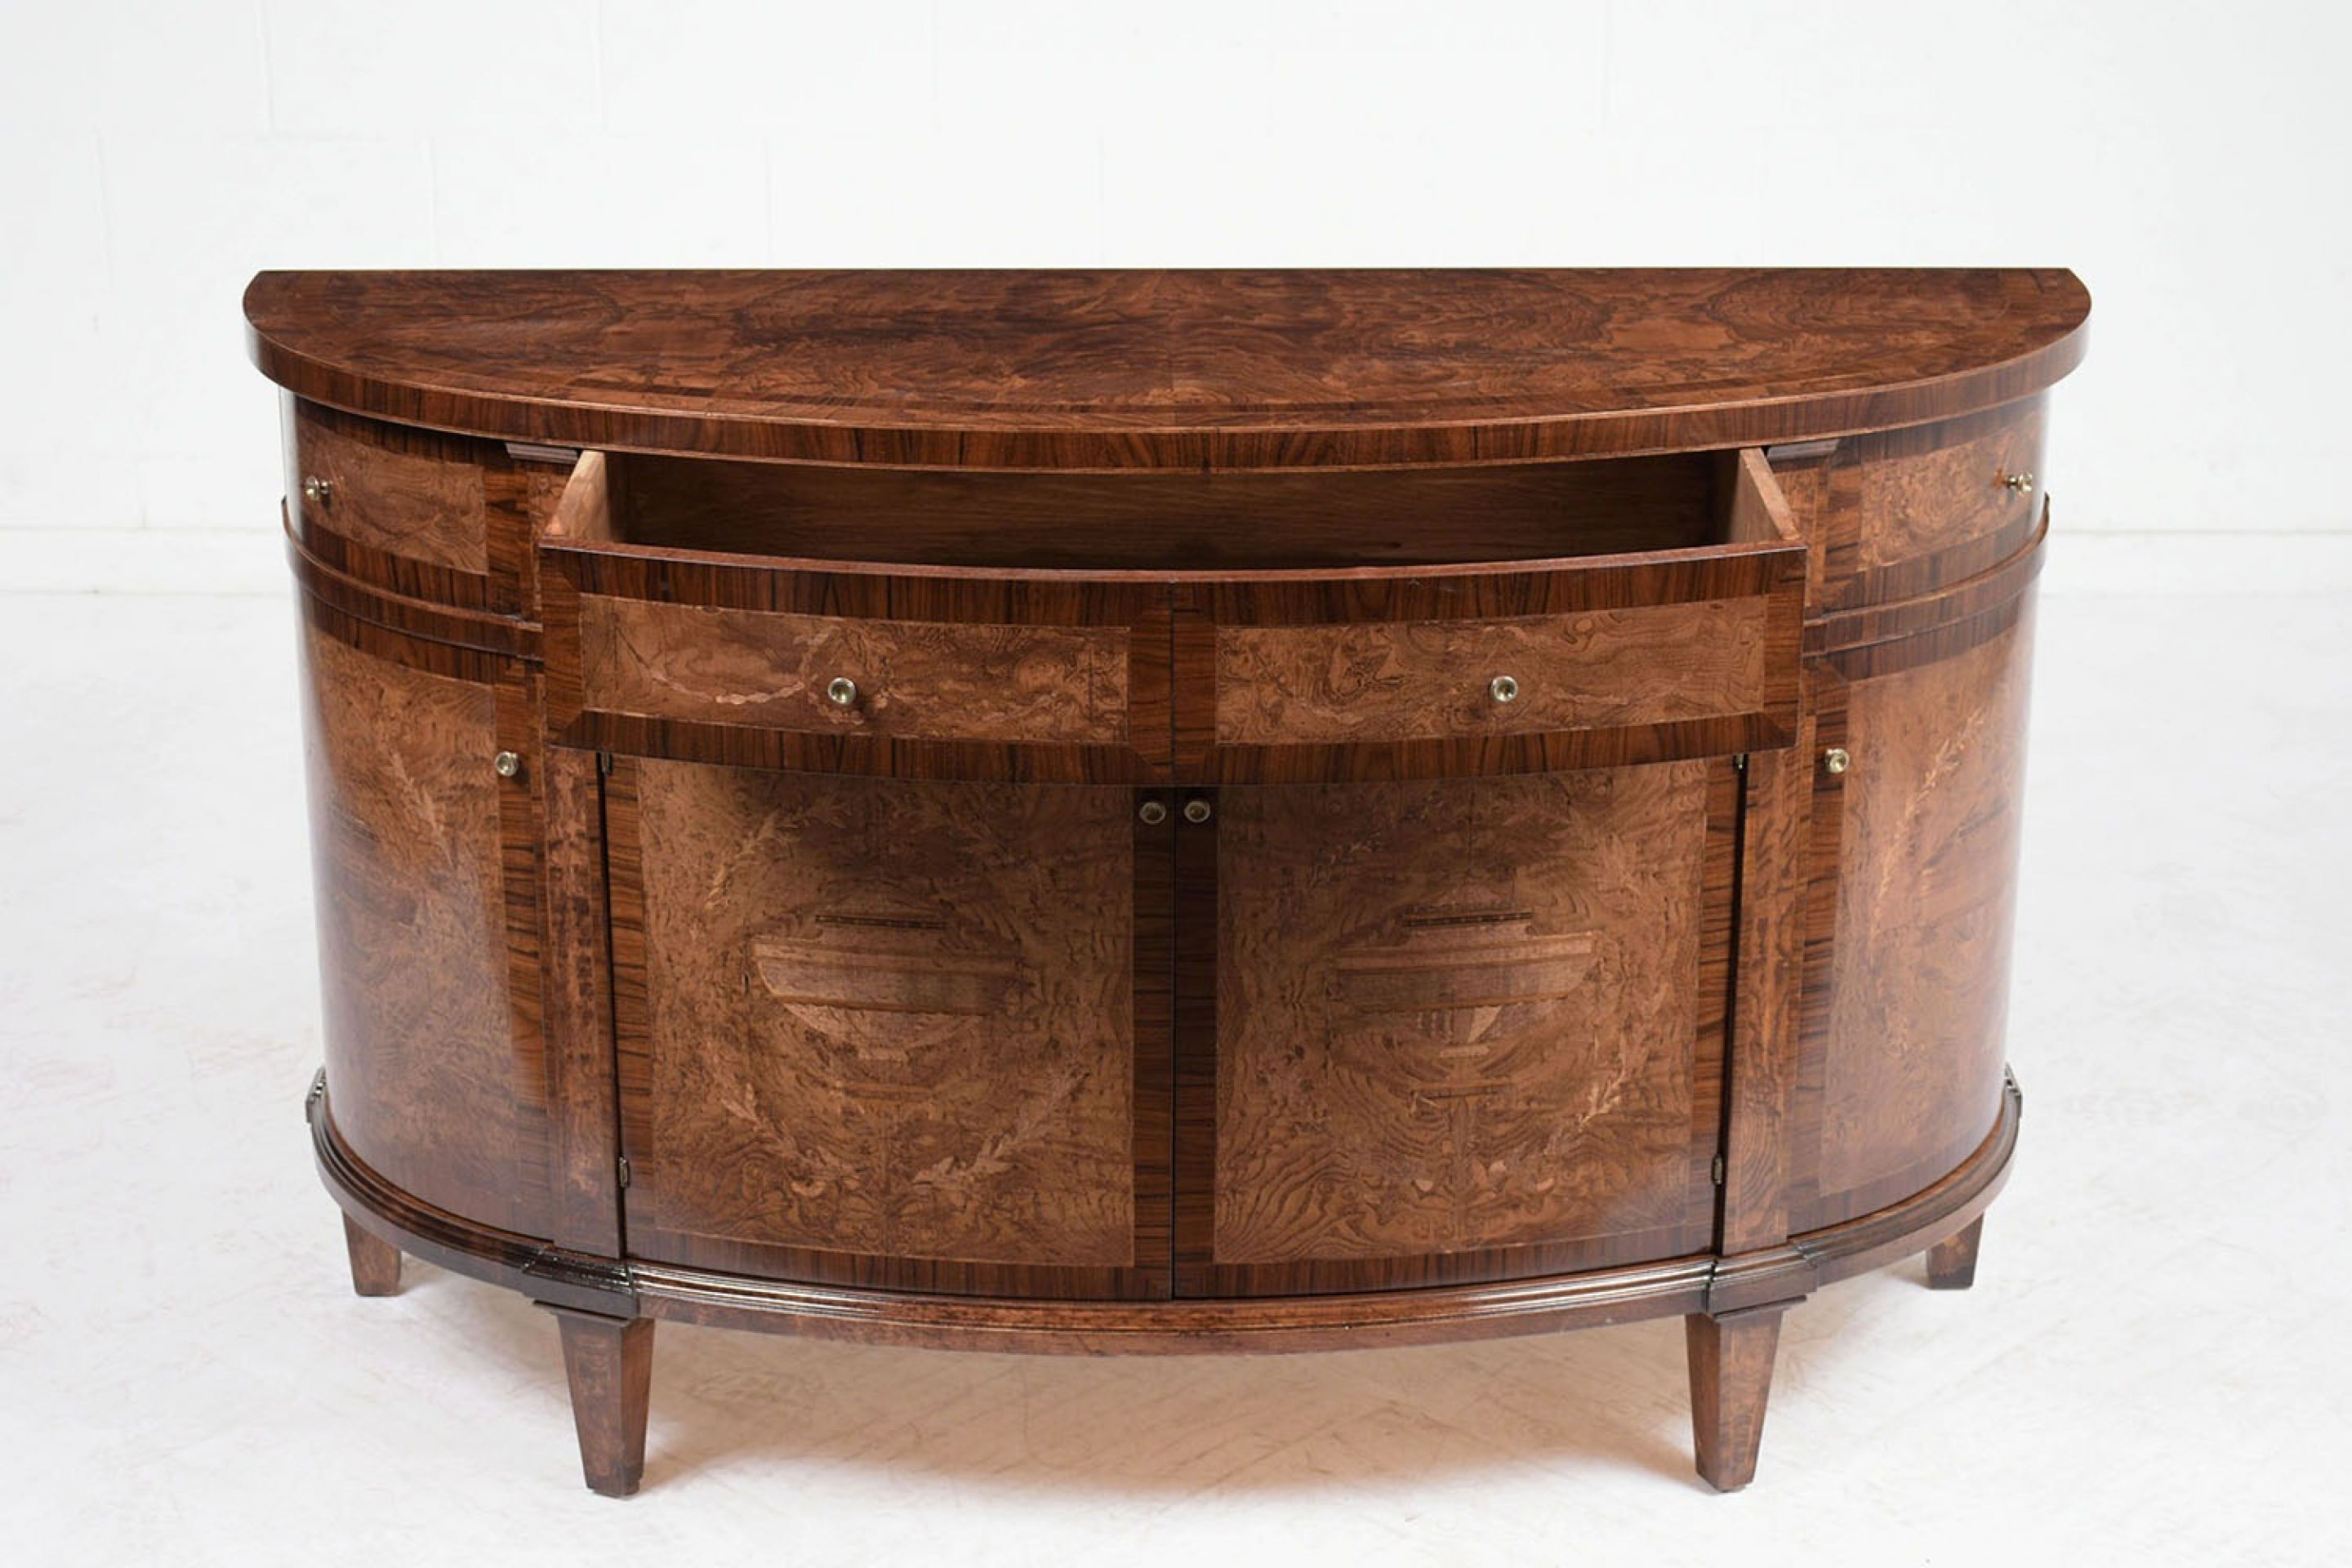 Contemporary Louis XVI-style Demilune Inlaid & Marquetry Buffet